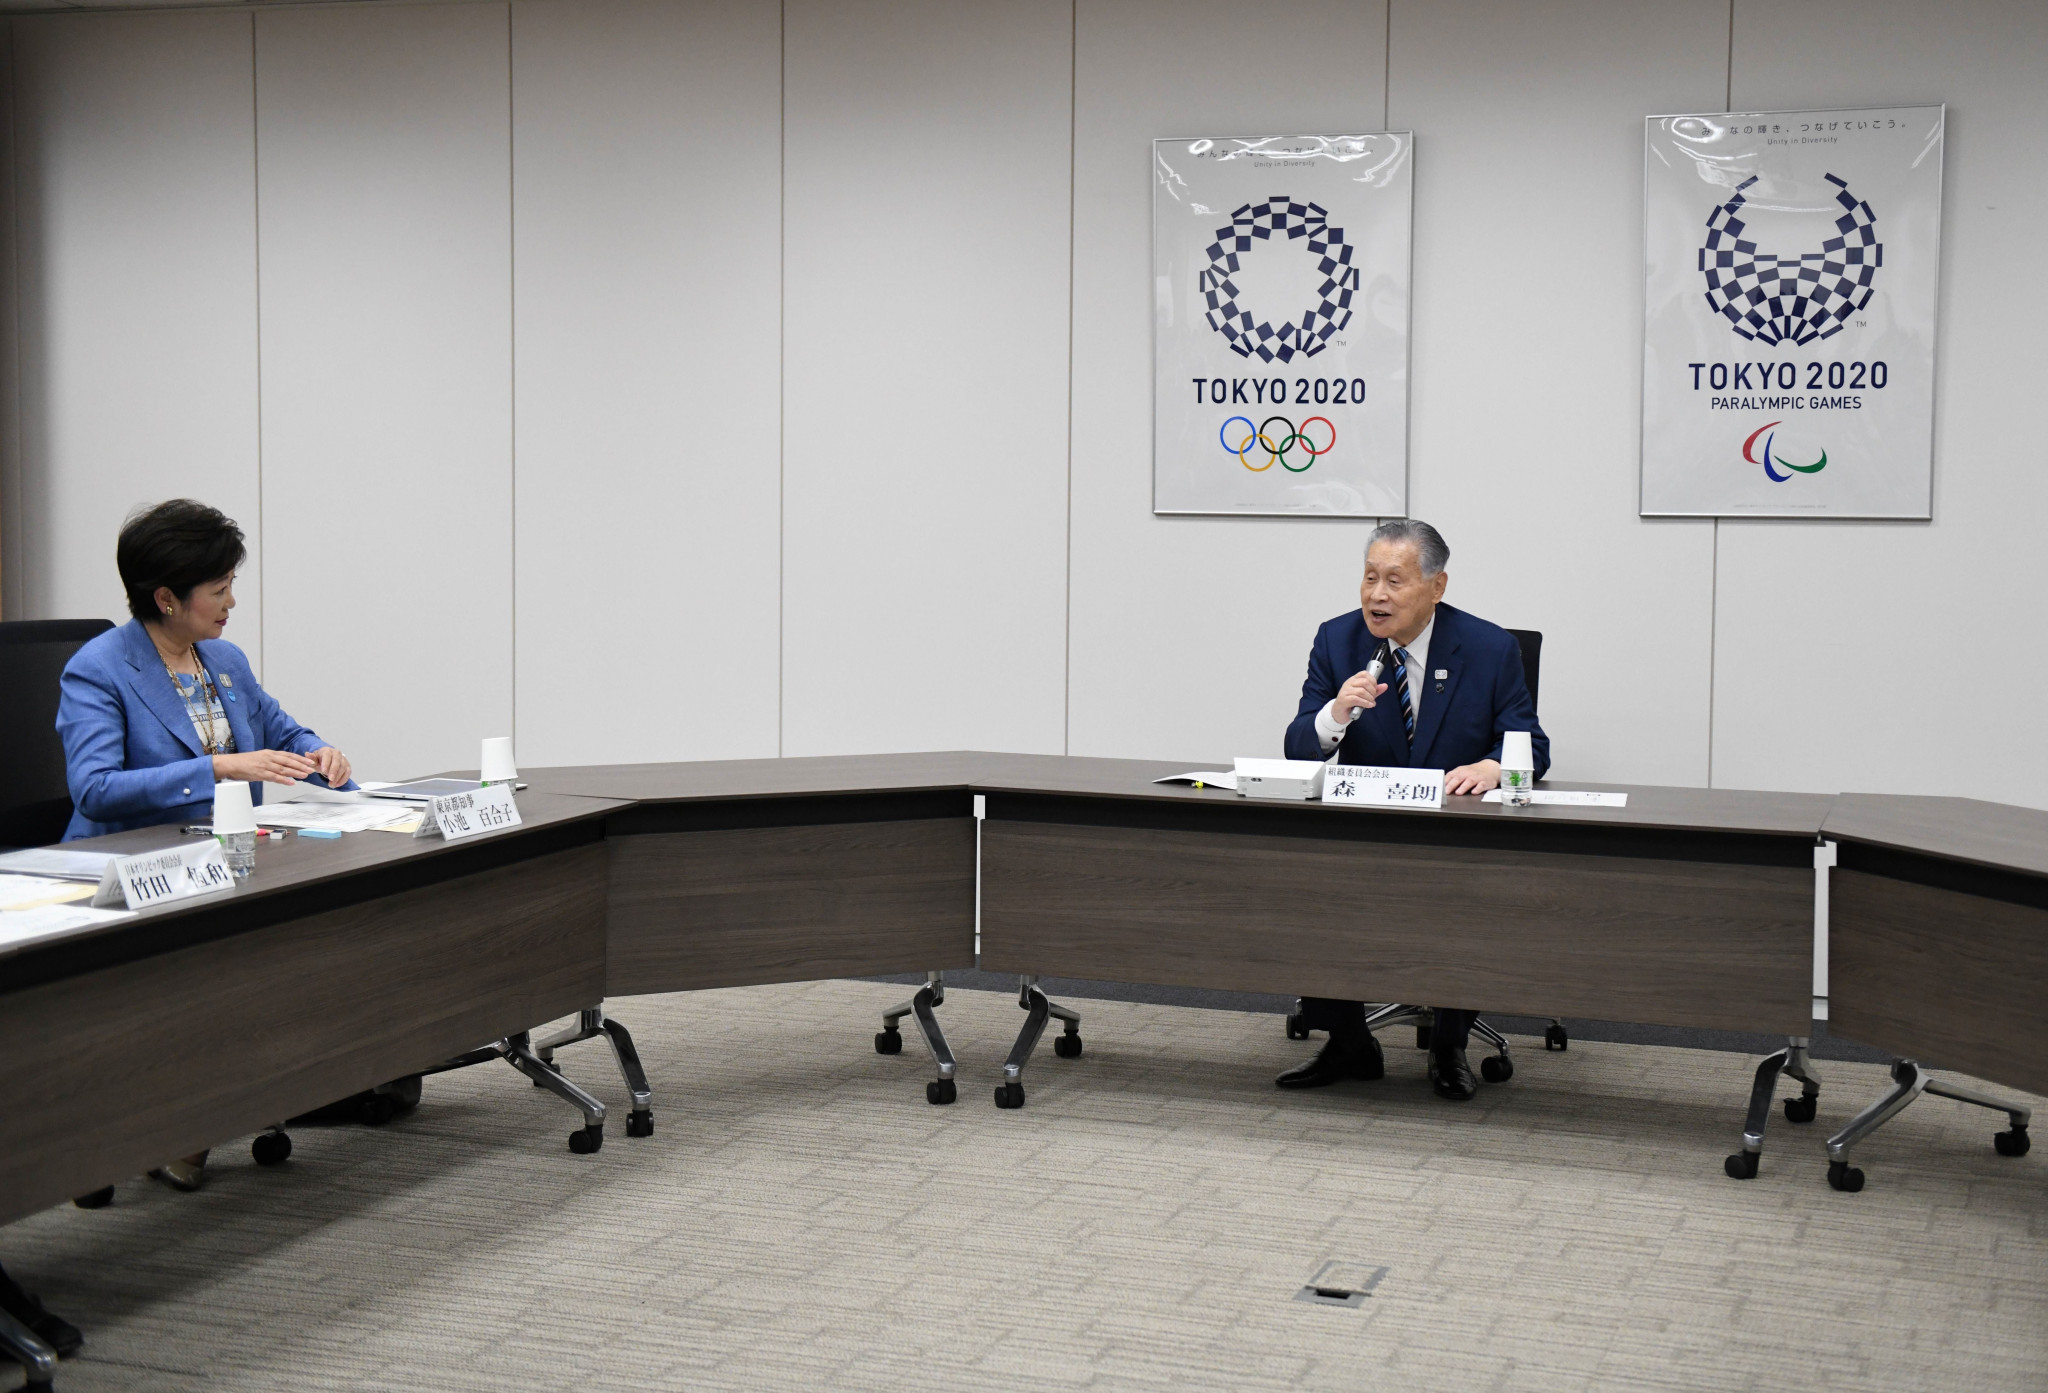 Tokyo 2020 invite public to provide feedback on draft sustainability plan